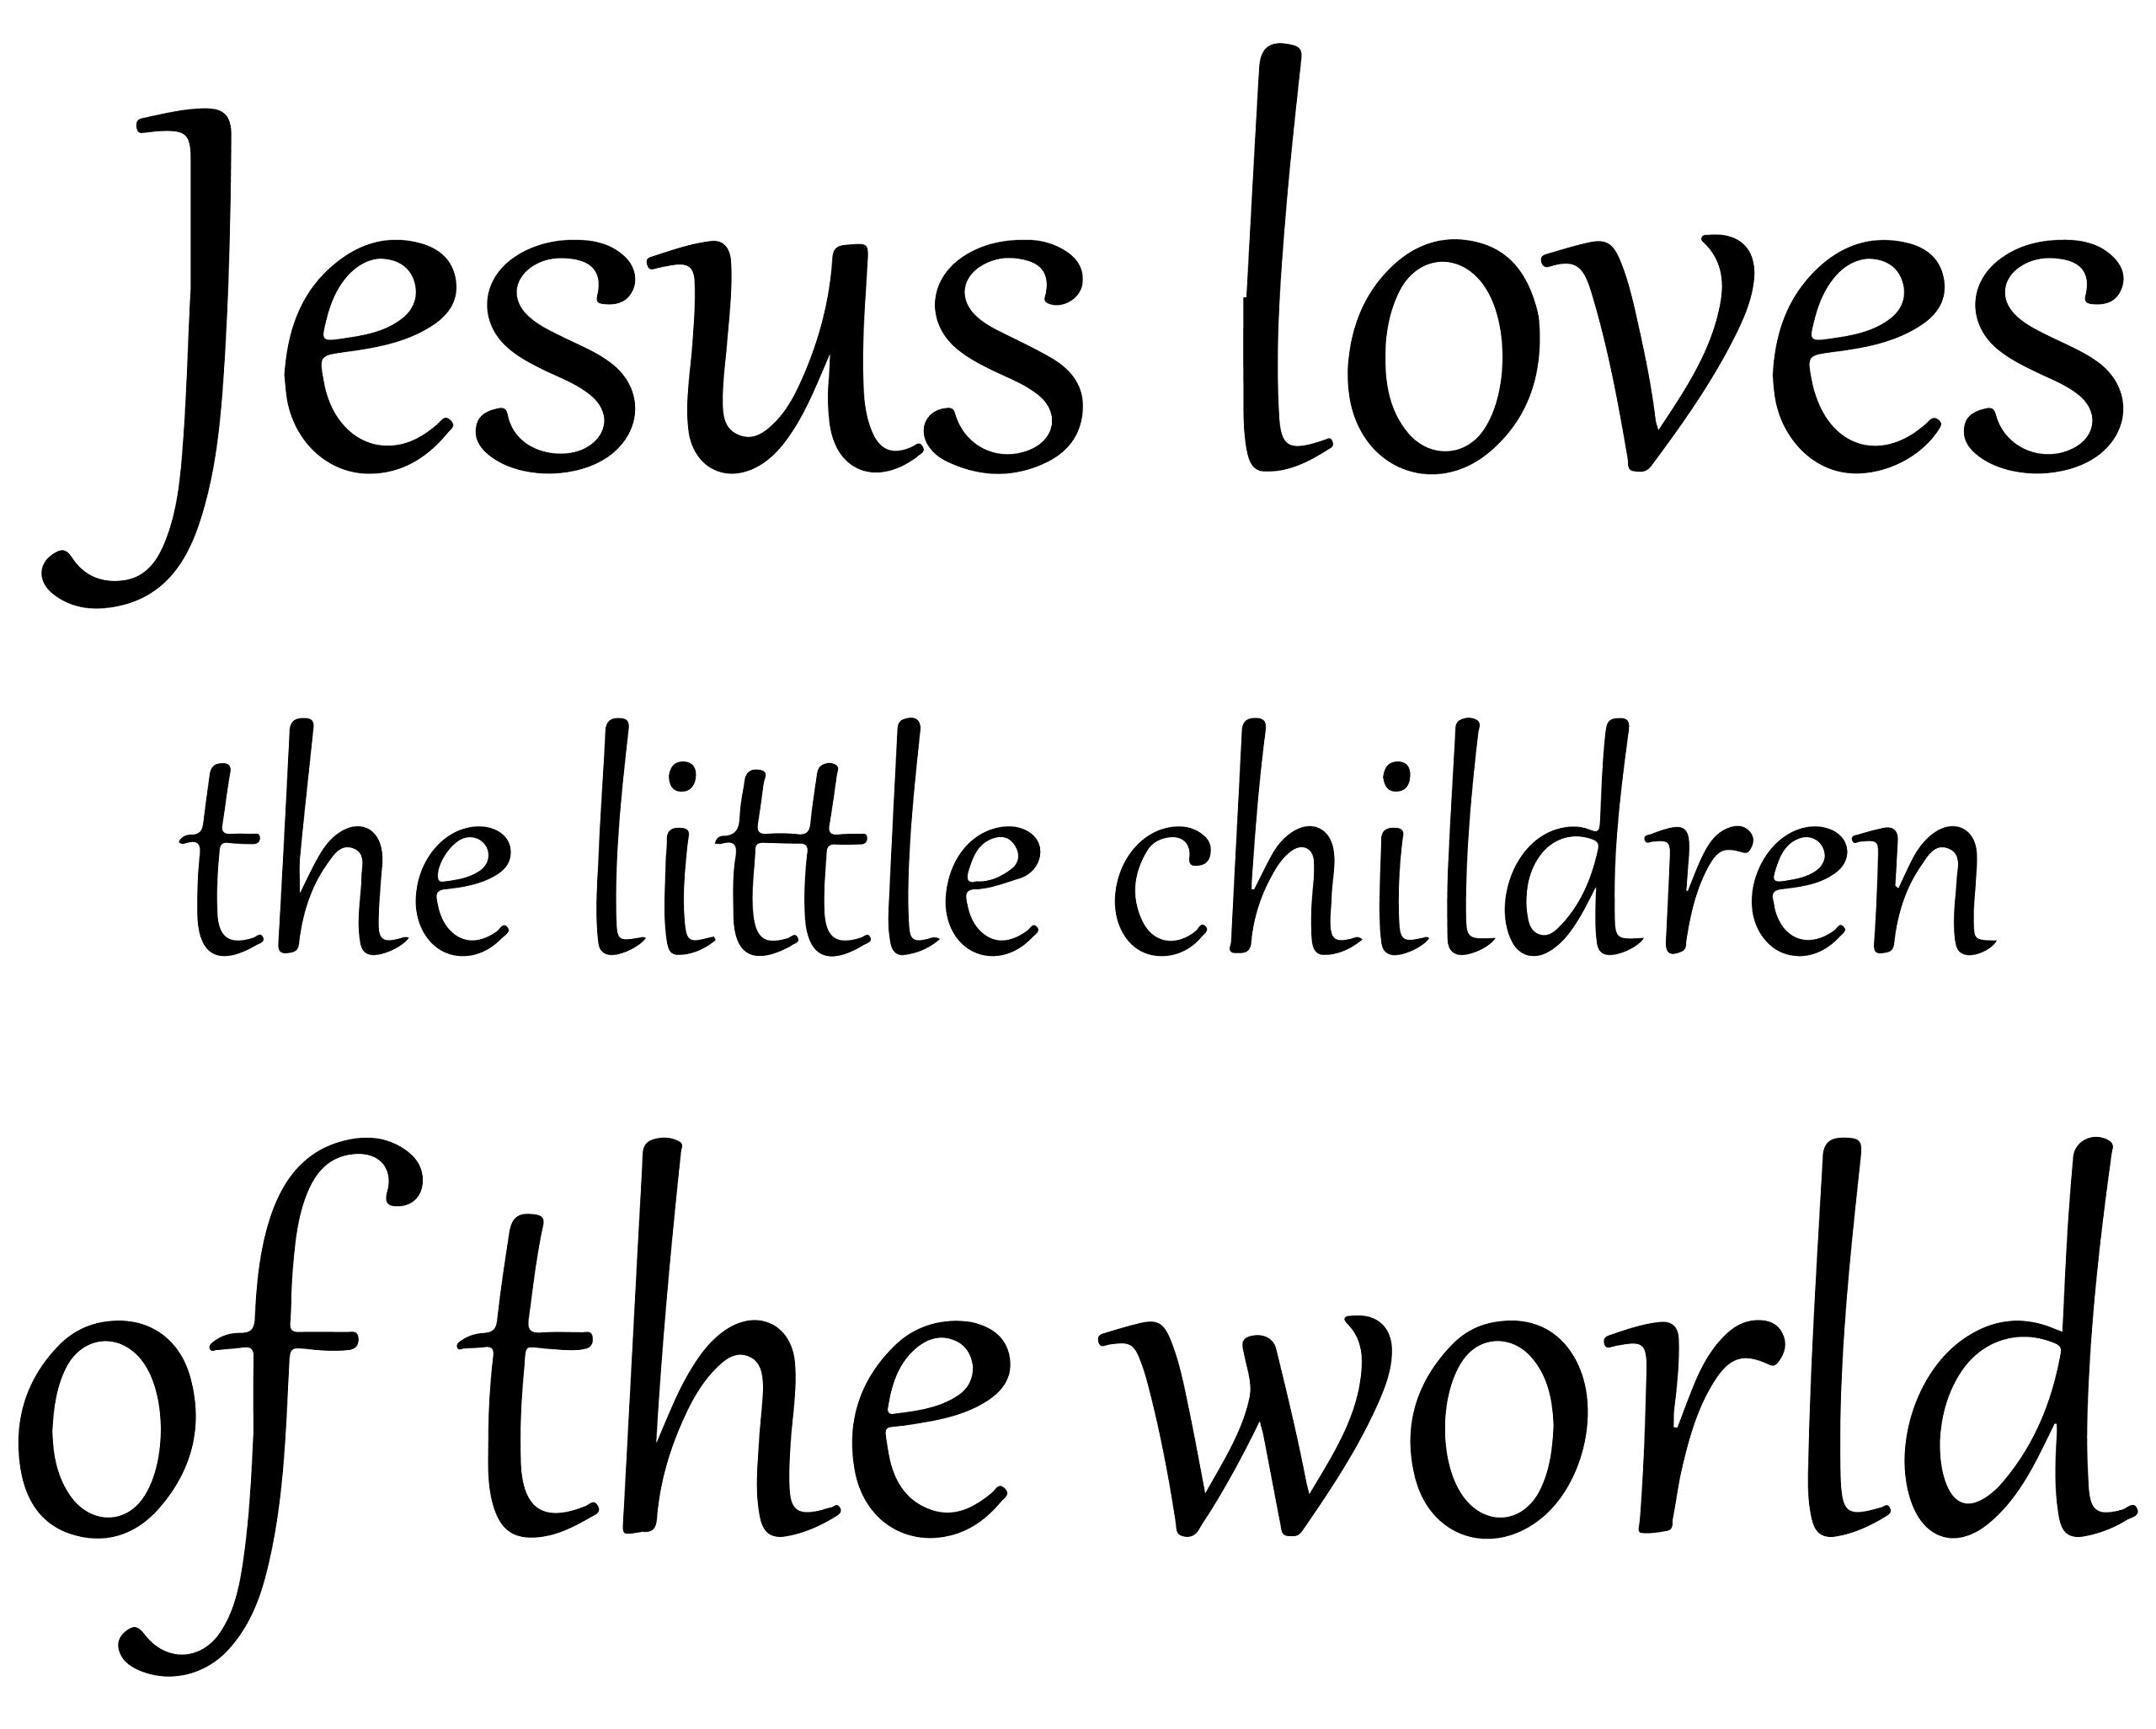 Omega Jesus loves the little children of the world Vinyl Decal Sticker Quote - Large - Black by Omega (Image #1)